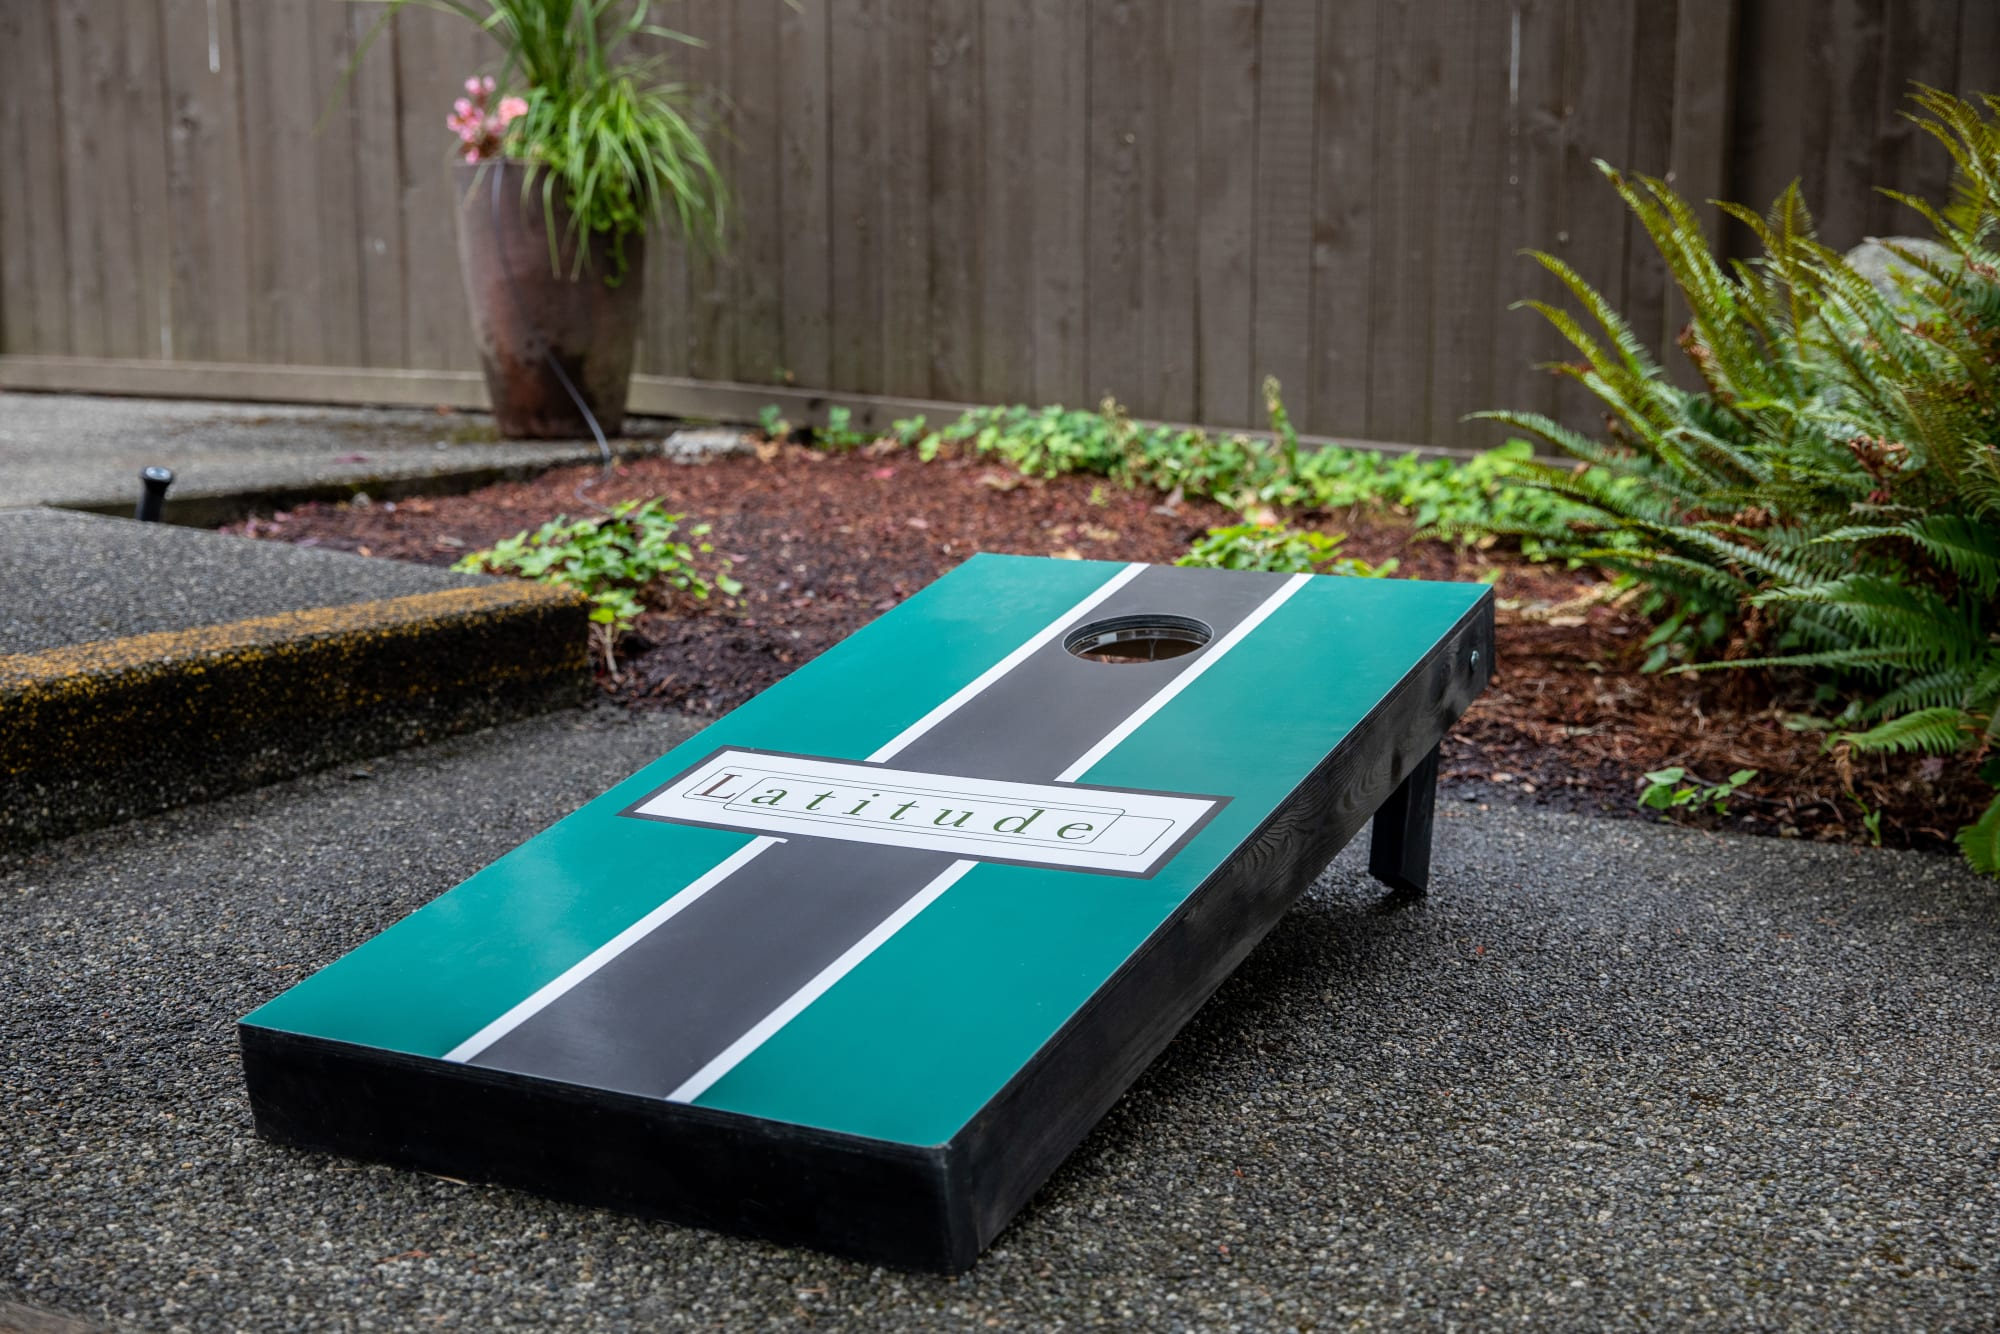 corn hole board in common area courtyard